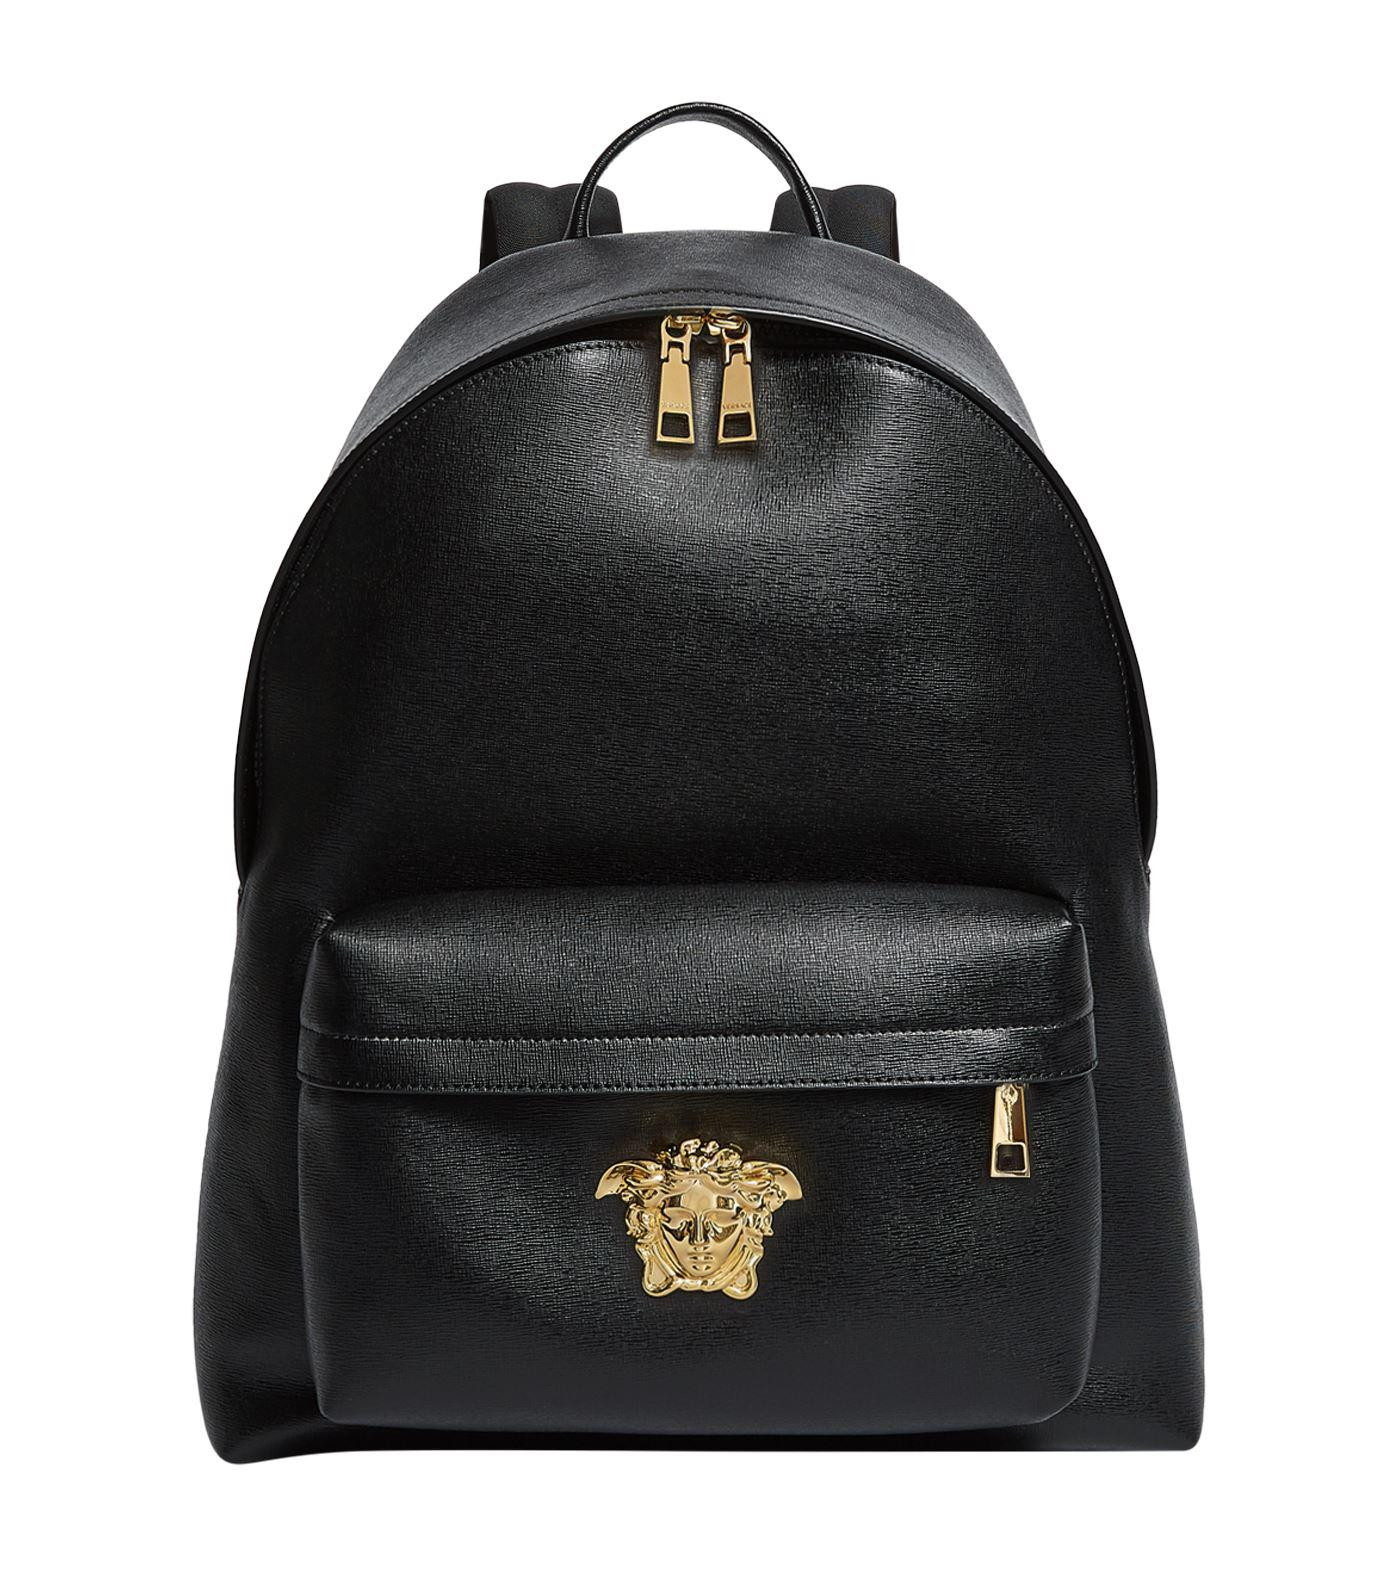 678b546fe797 Lyst - Versace Leather Palazzo Backpack in Black for Men